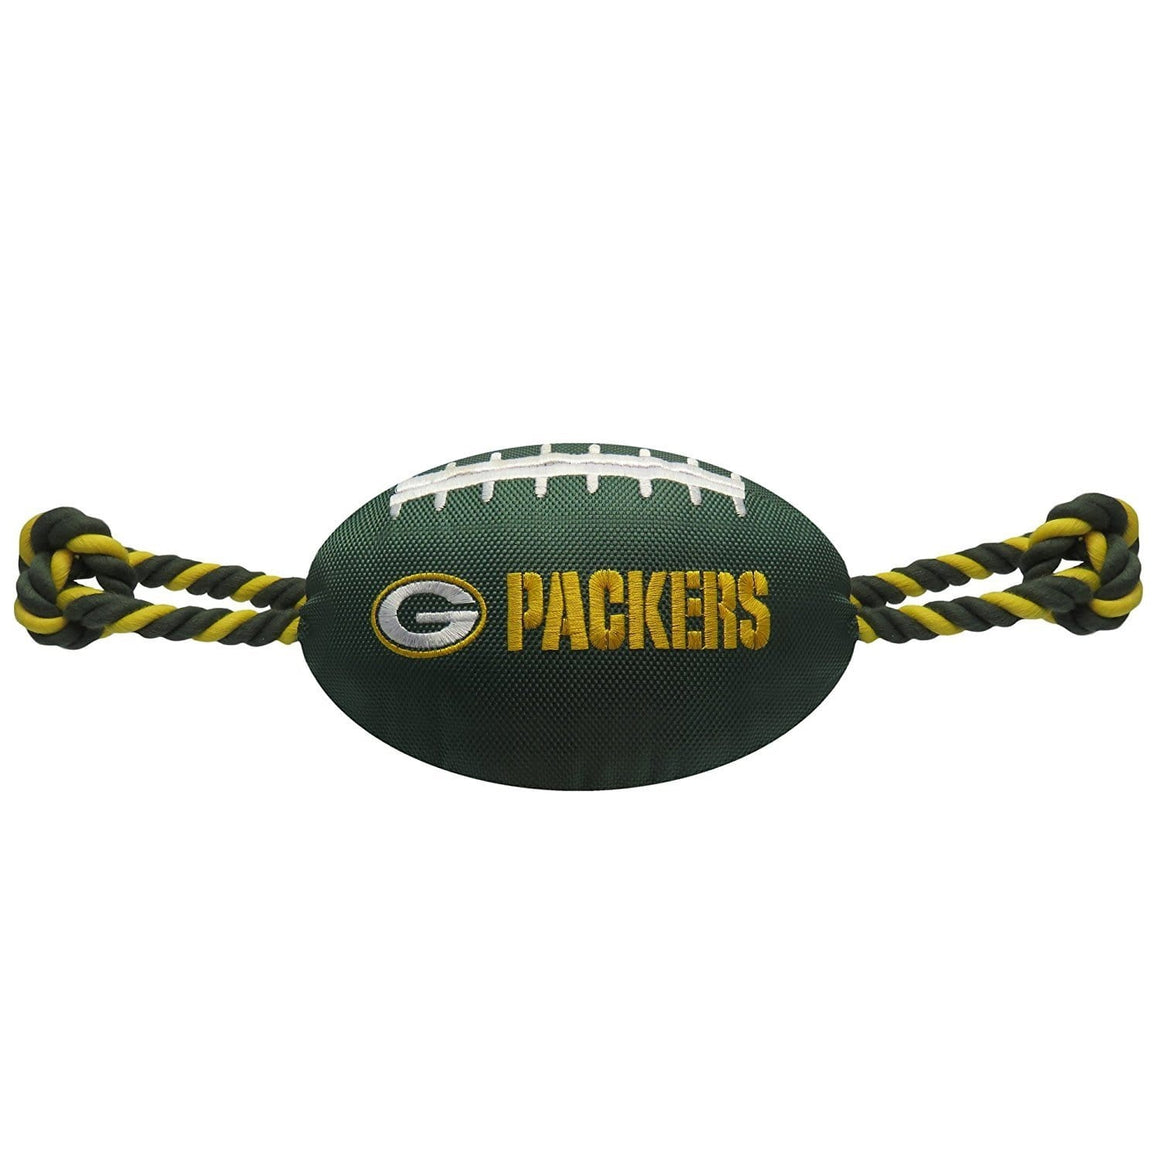 Pets First Dog-products NFL Green Bay Packers Pet Nylon Football